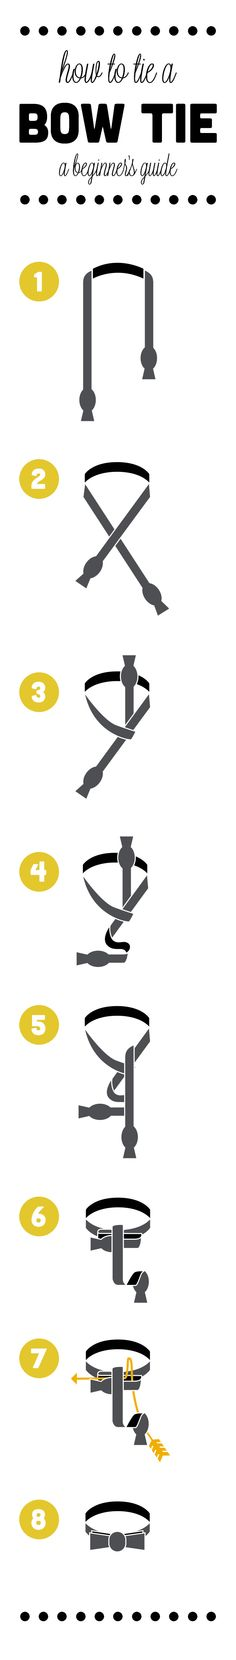 Learn how to tie a bow tie just in time for New Year's Eve.